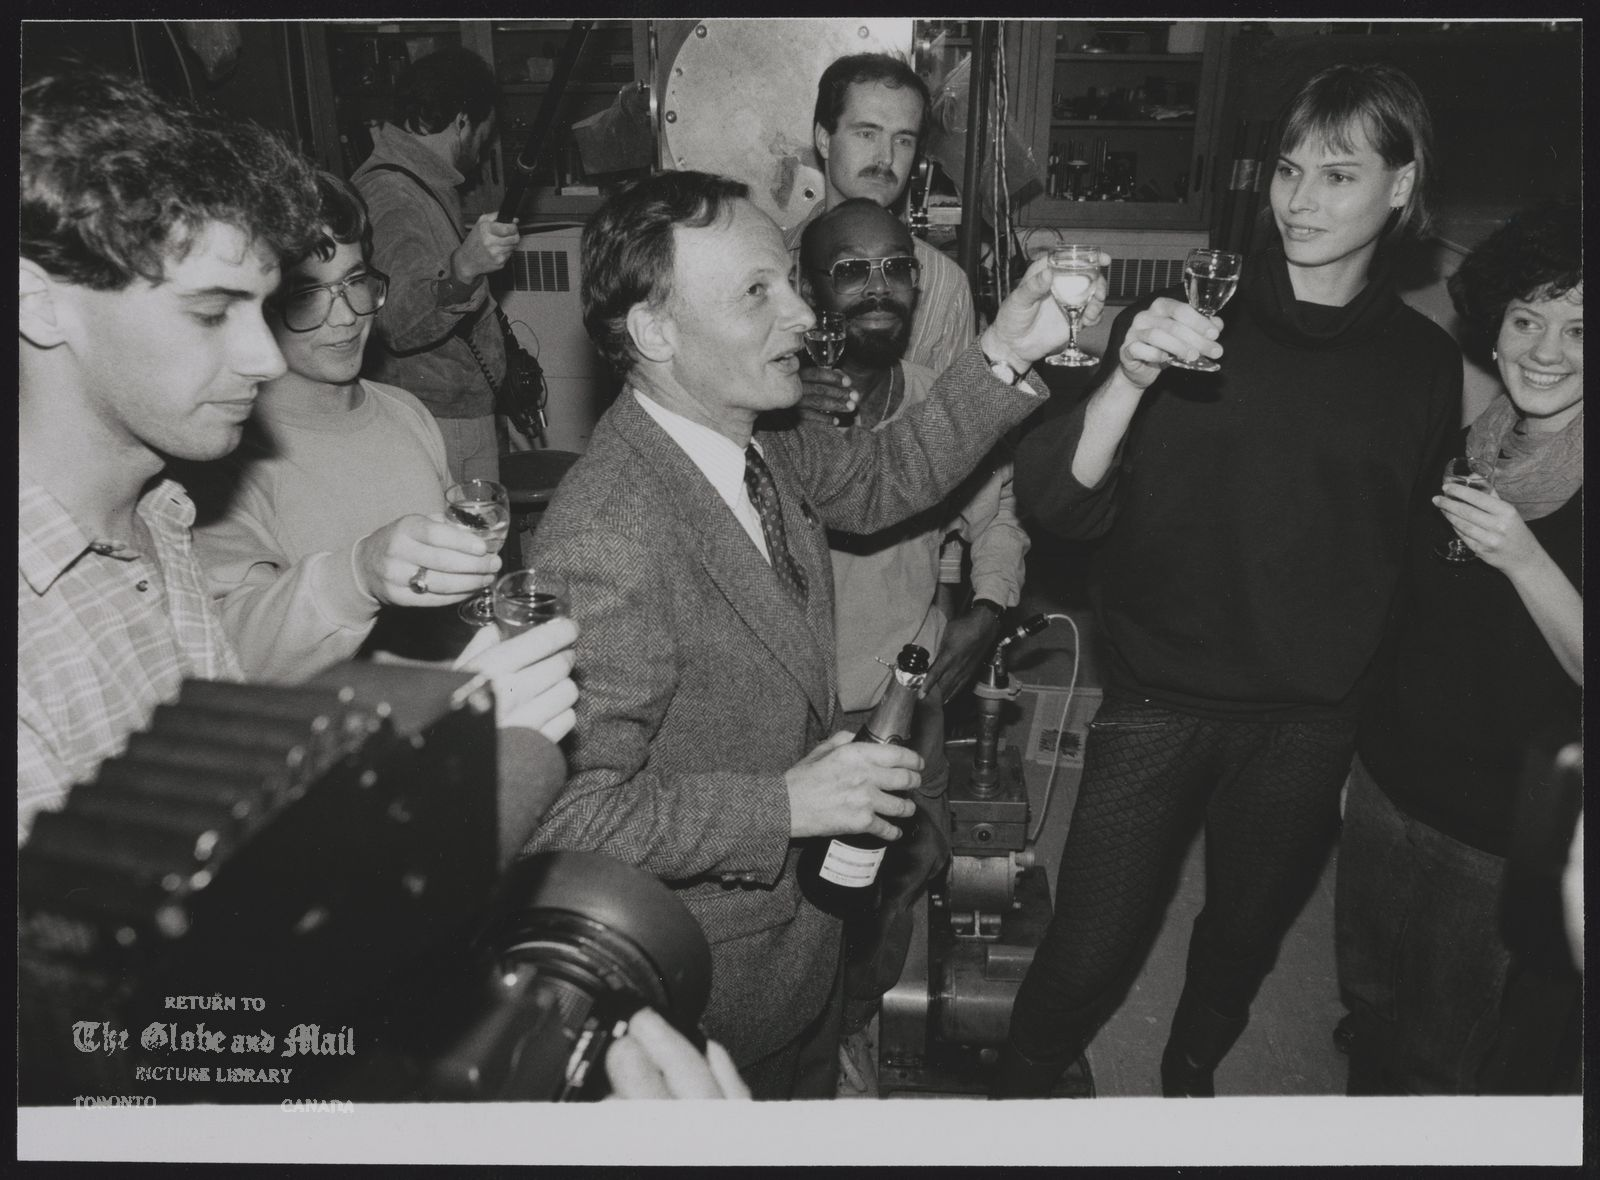 John POLANYI Toronto. Chemist John Polanyi 's chemistry students salute him with champagne after learning he had won Nobel Prize for chemistry.